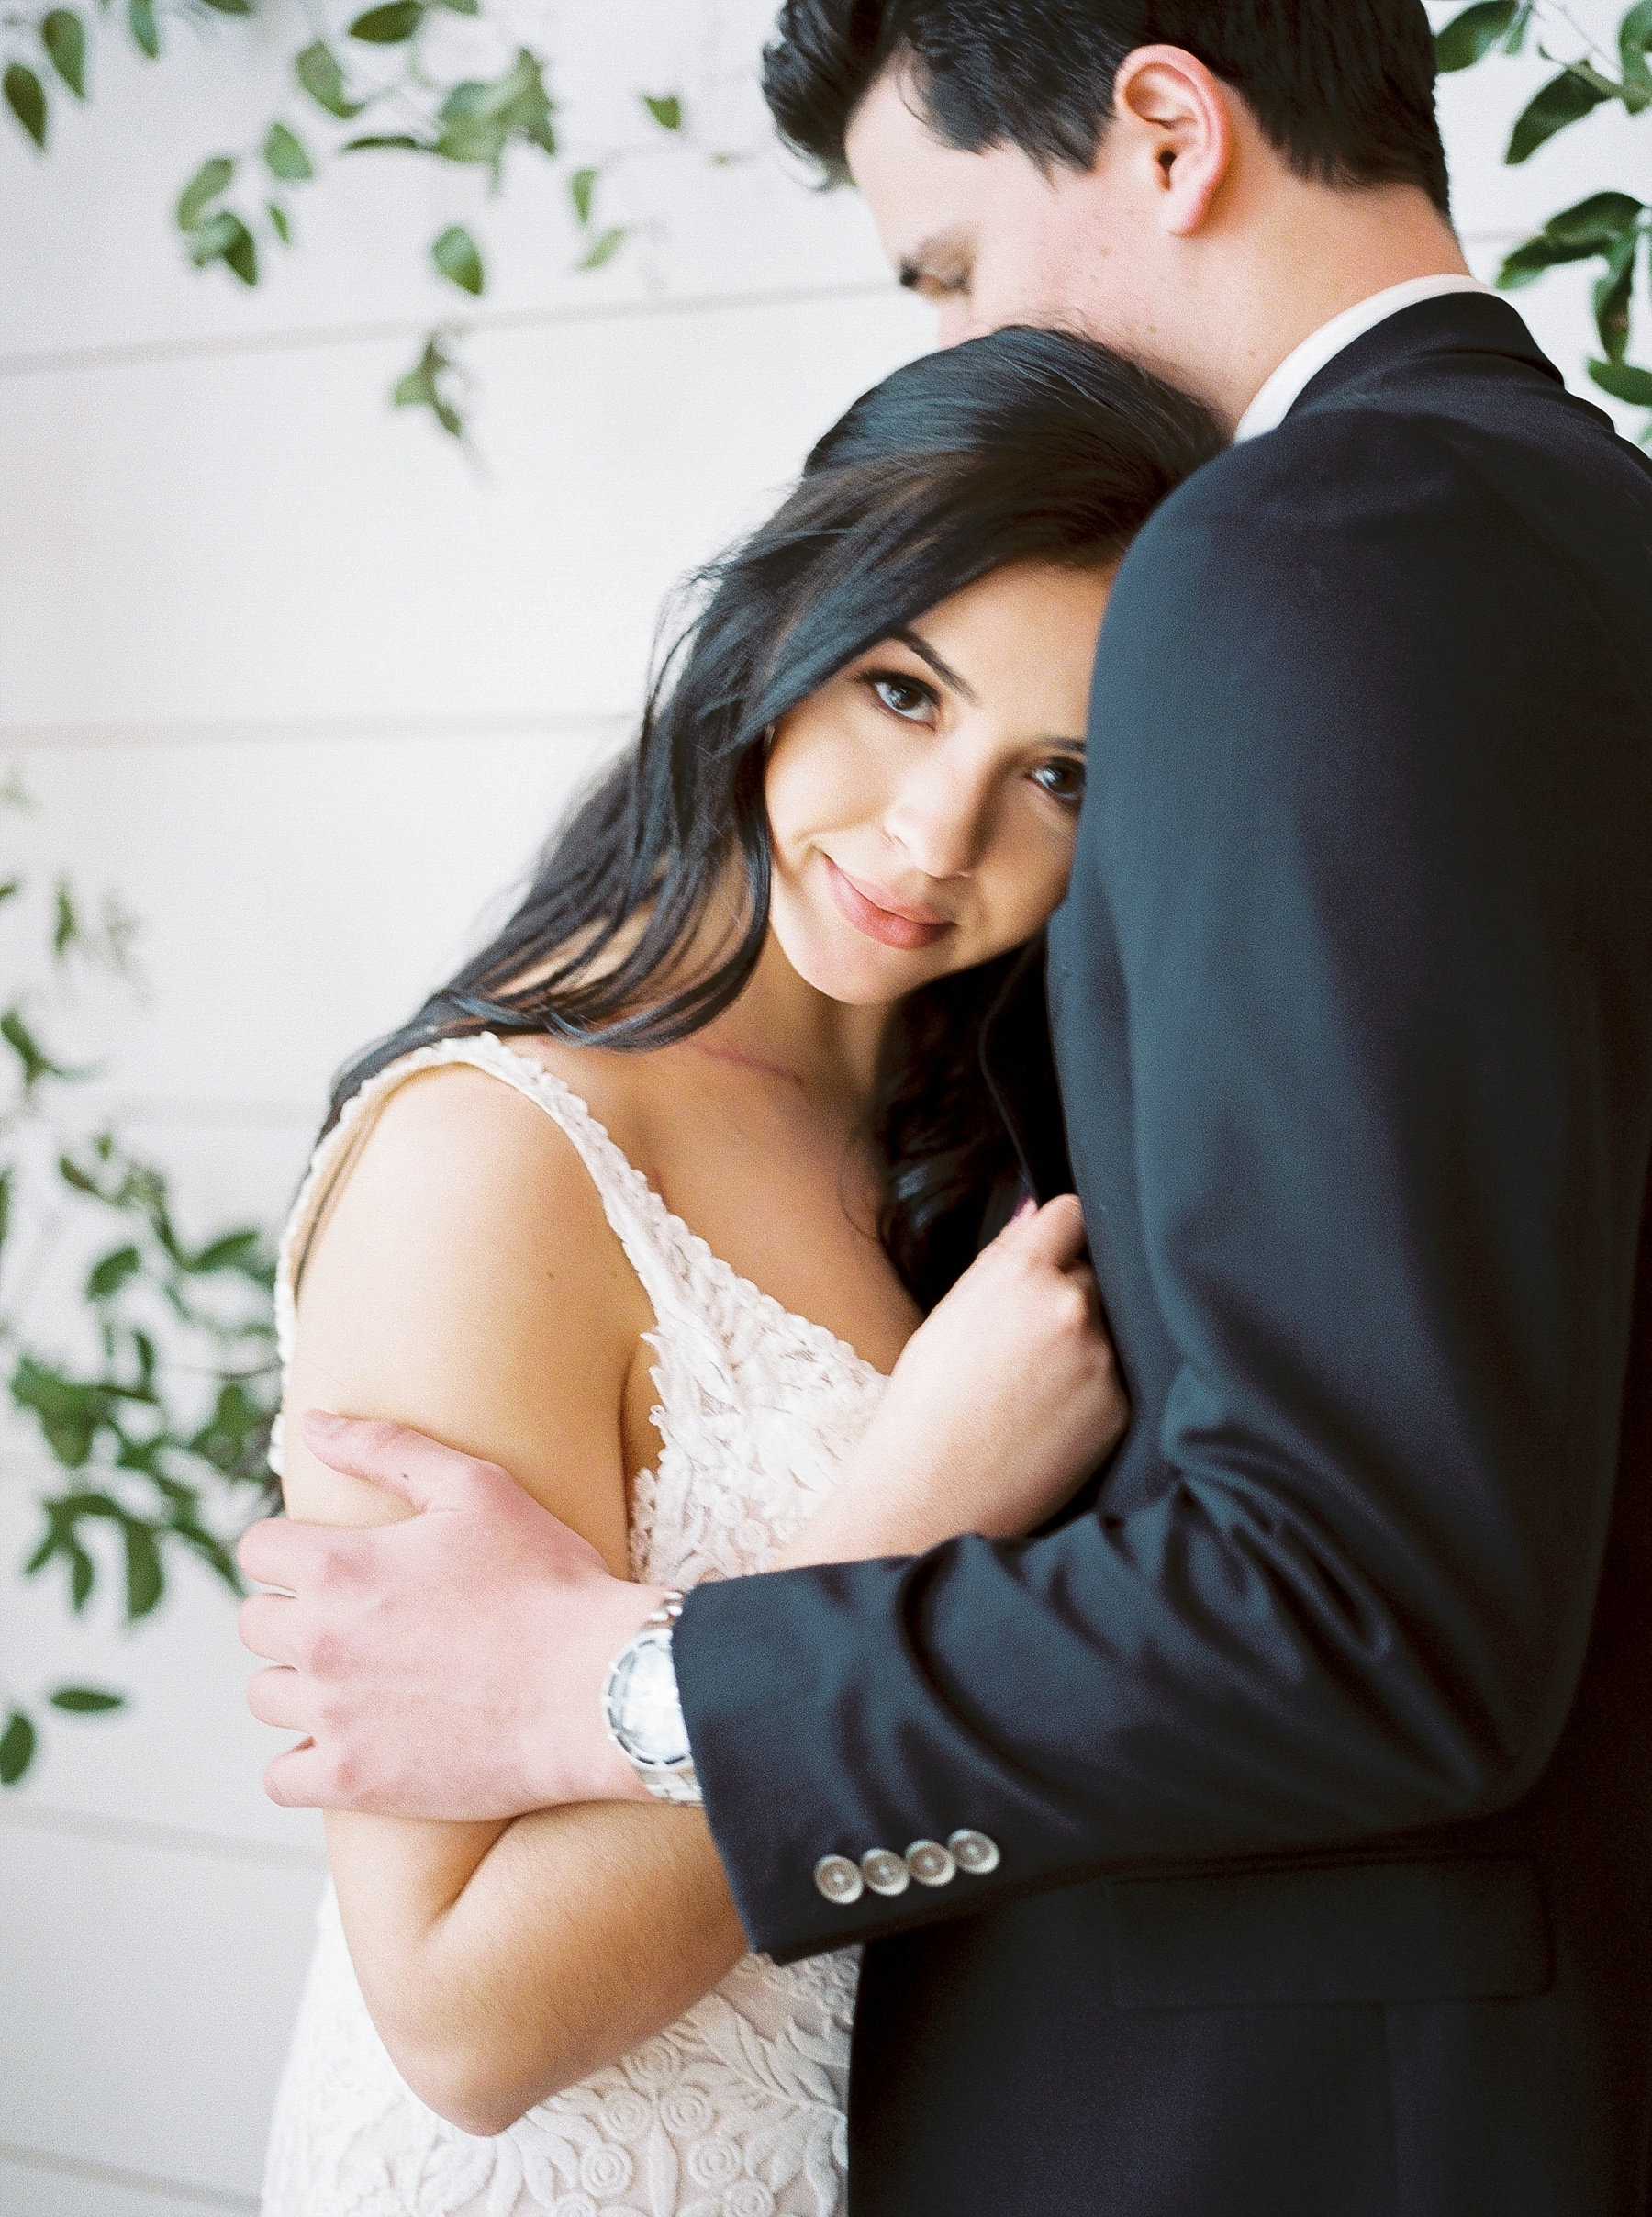 Intimate Lakeside Elopement at Emerson Fields All White Wedding Venue by Kelsi Kliethermes Photography Best Missouri and Maui Wedding Photographer_0007.jpg